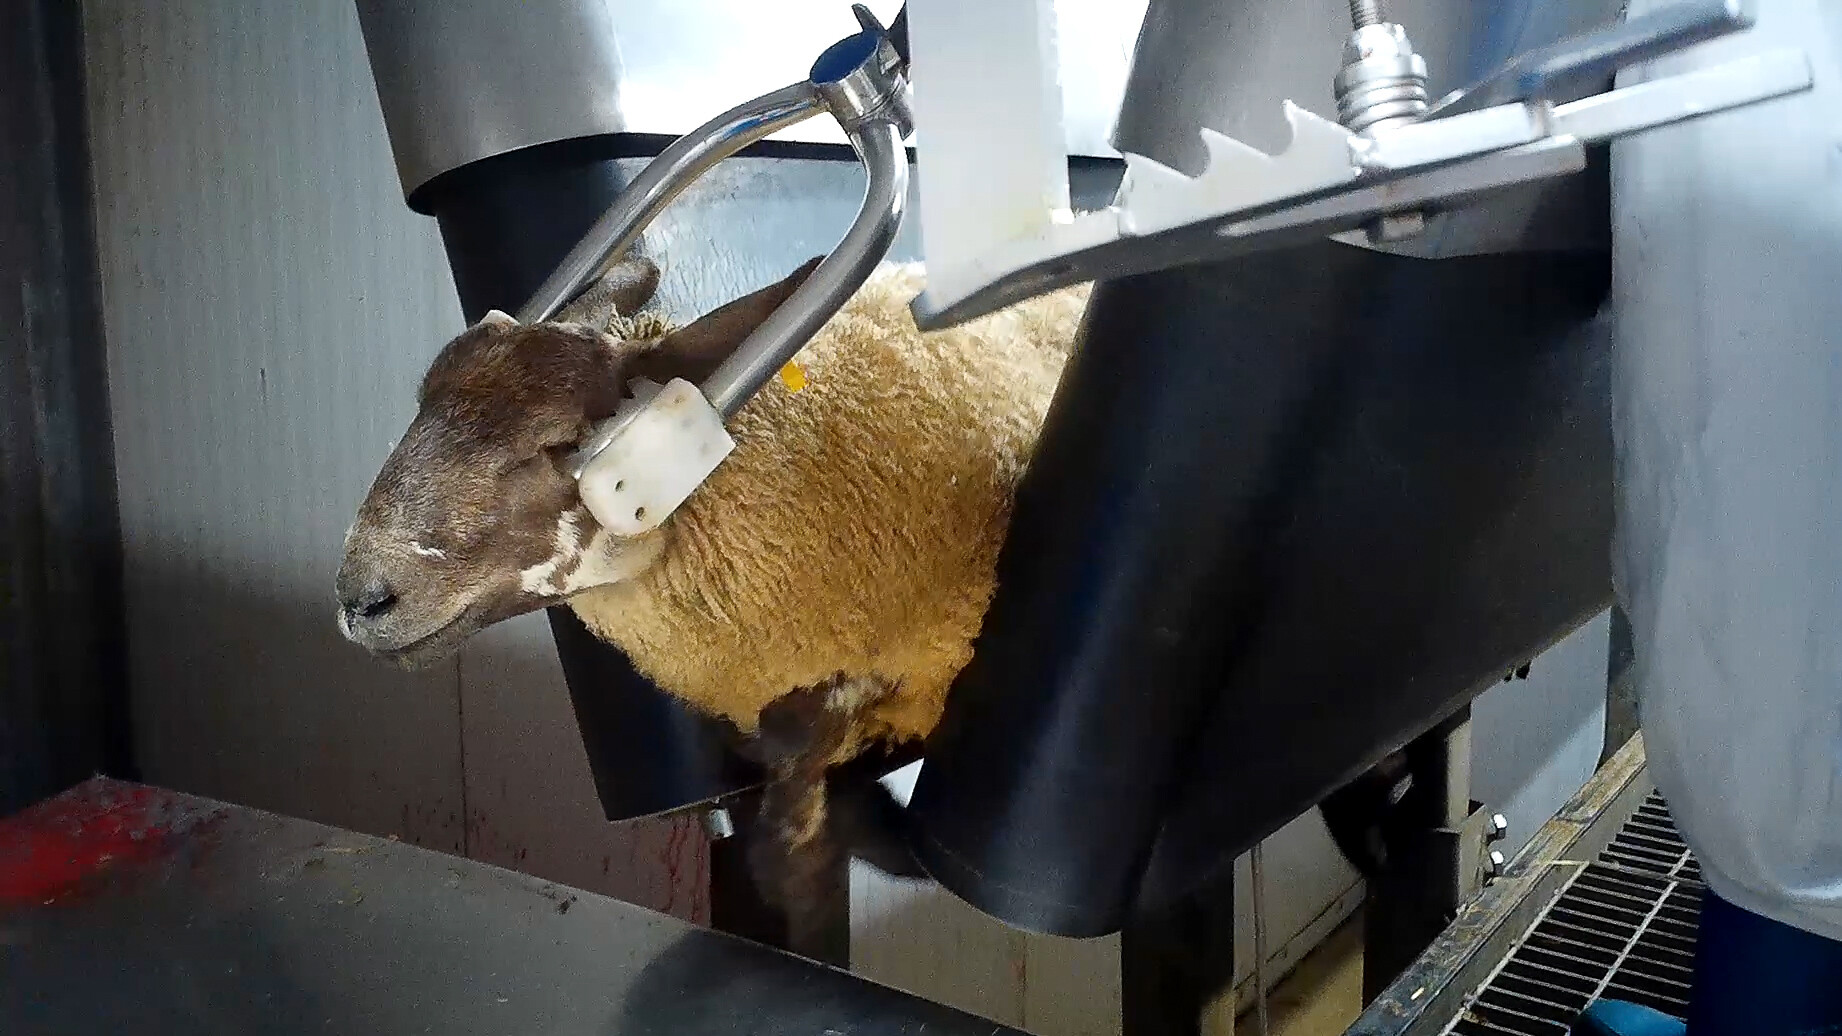 Sheep being stunned to death in slaughterhouse